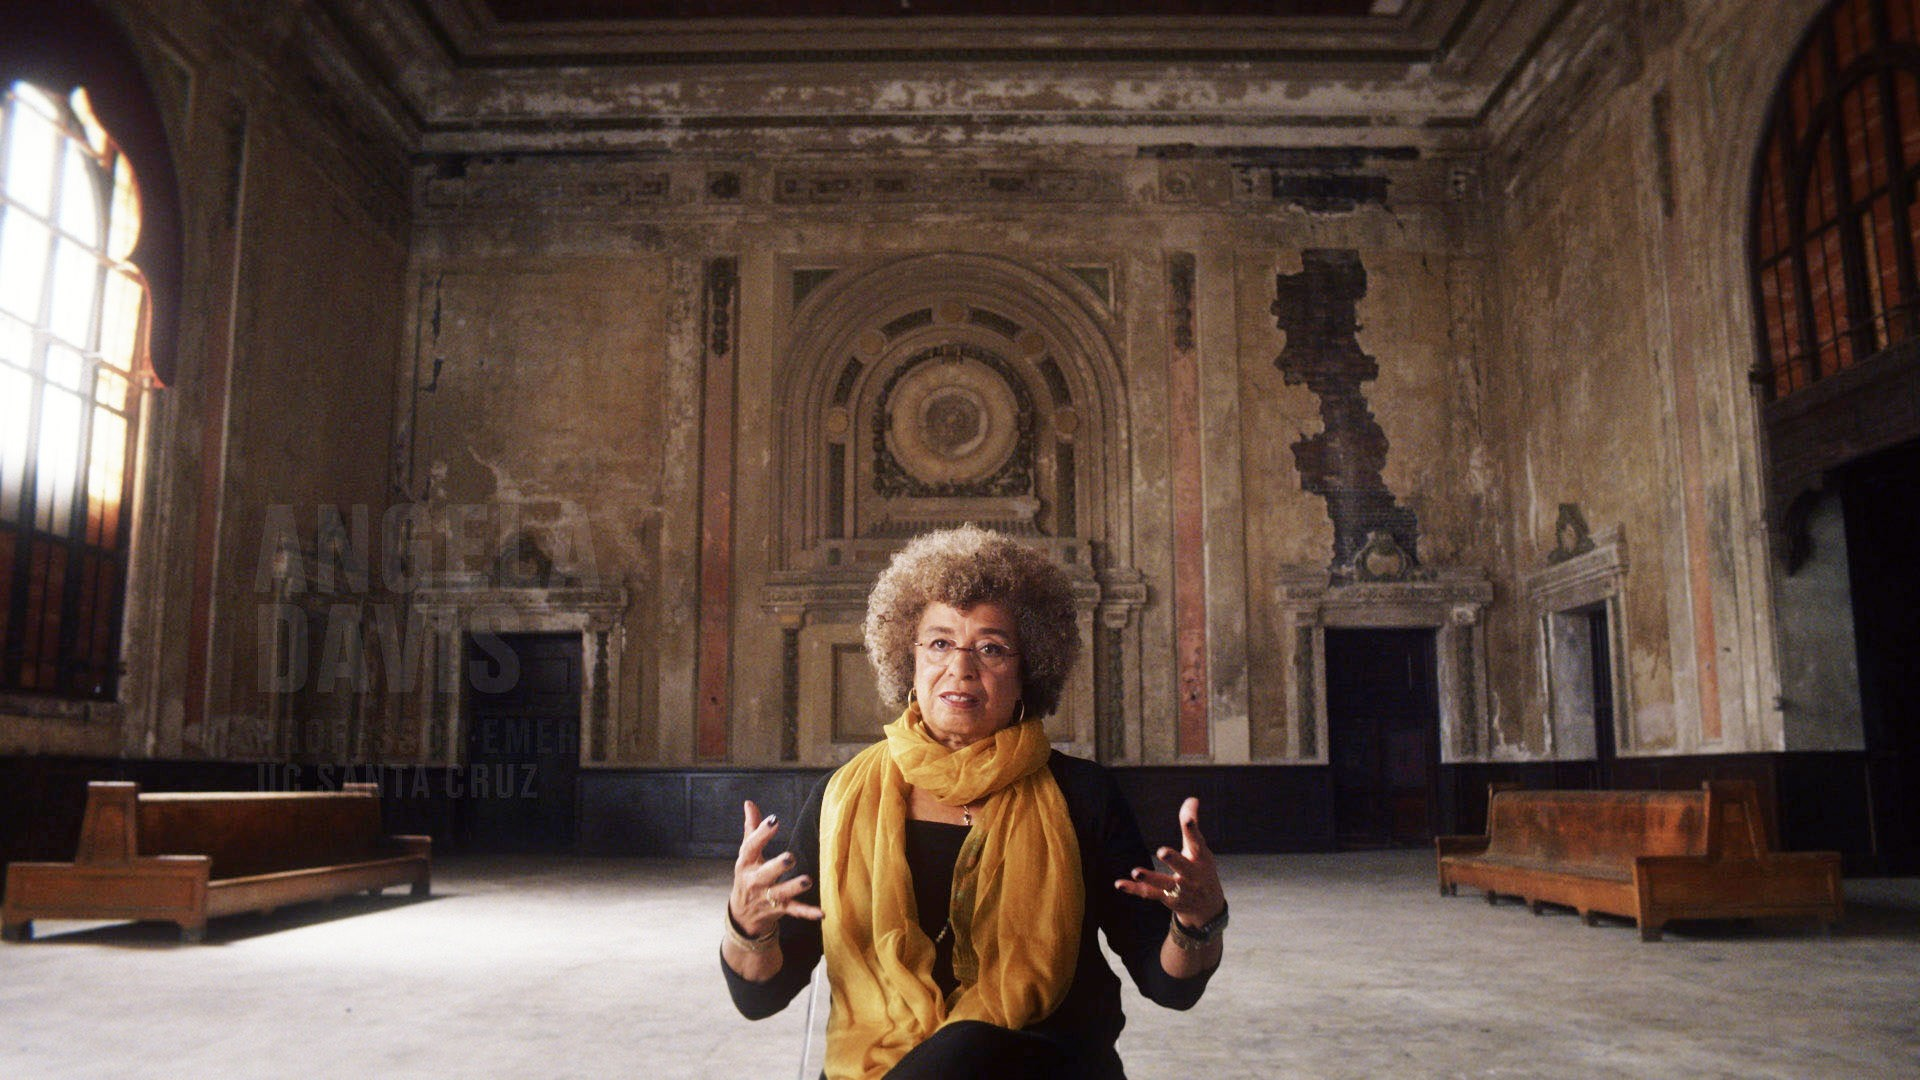 THE 13th, Angela Davis, 2016. ©Netflix/courtesy Everett collection.